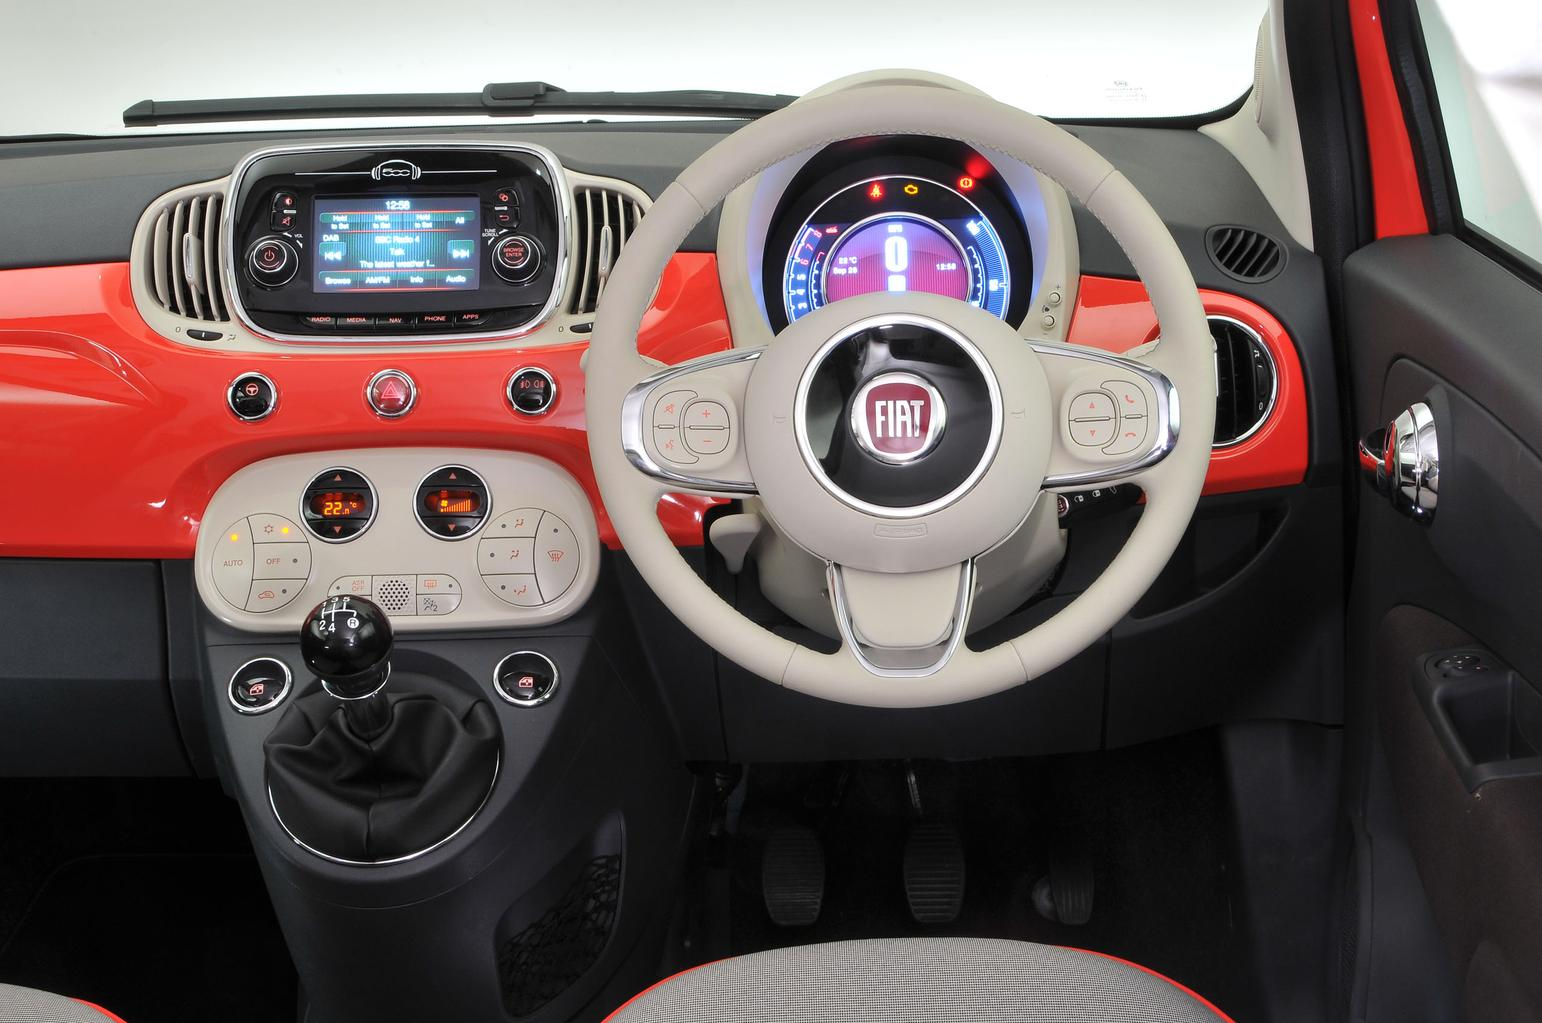 10 reasons to buy a Fiat 500